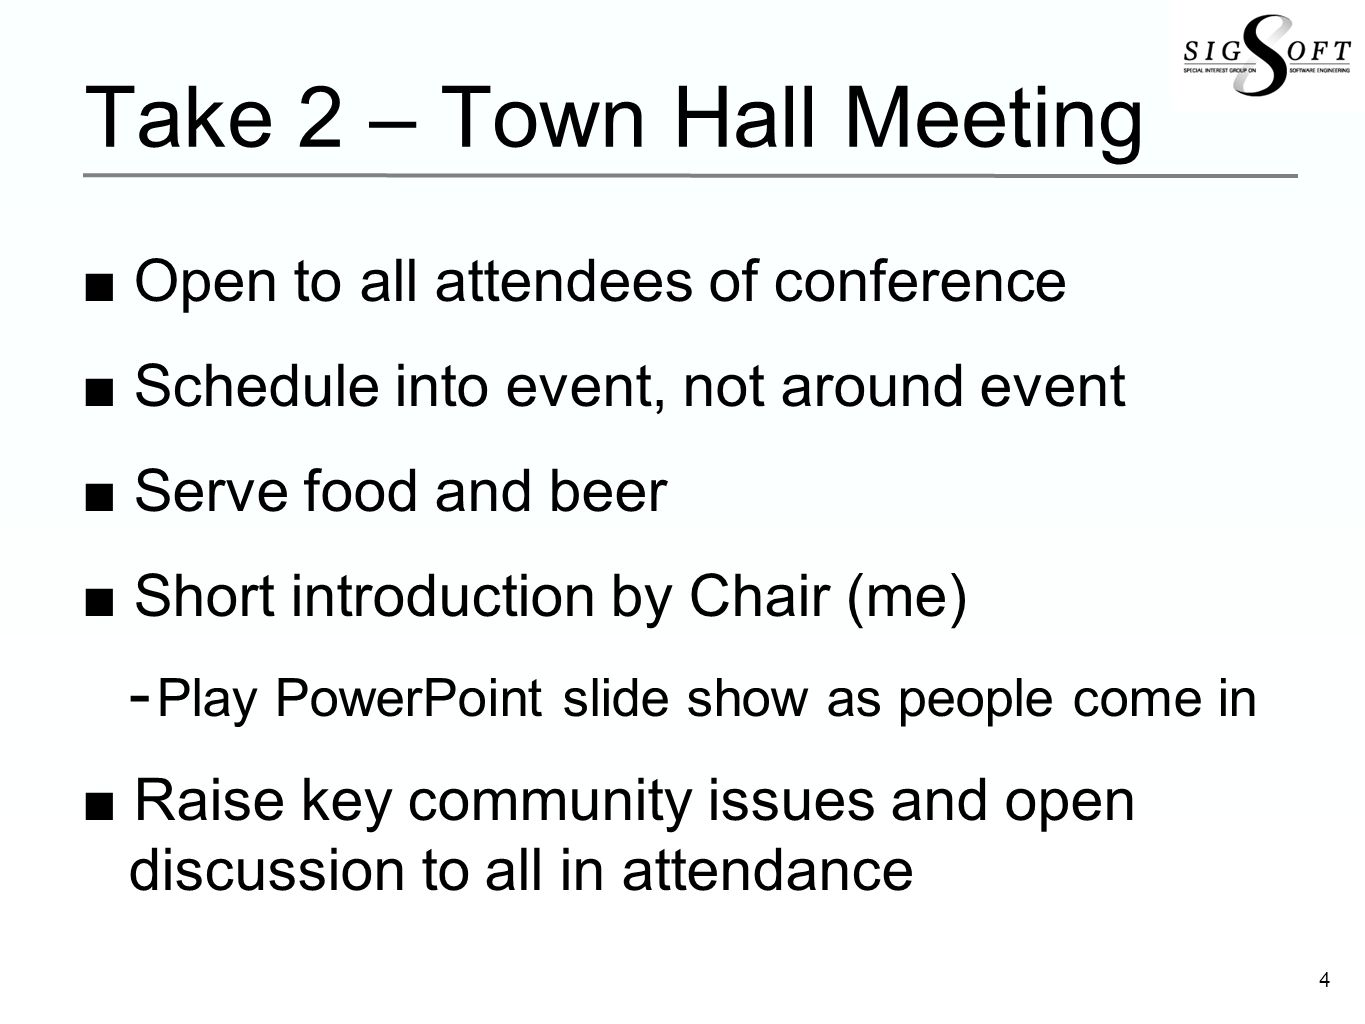 4 Take 2 – Town Hall Meeting Open to all attendees of conference Schedule into event, not around event Serve food and beer Short introduction by Chair (me) Play PowerPoint slide show as people come in Raise key community issues and open discussion to all in attendance